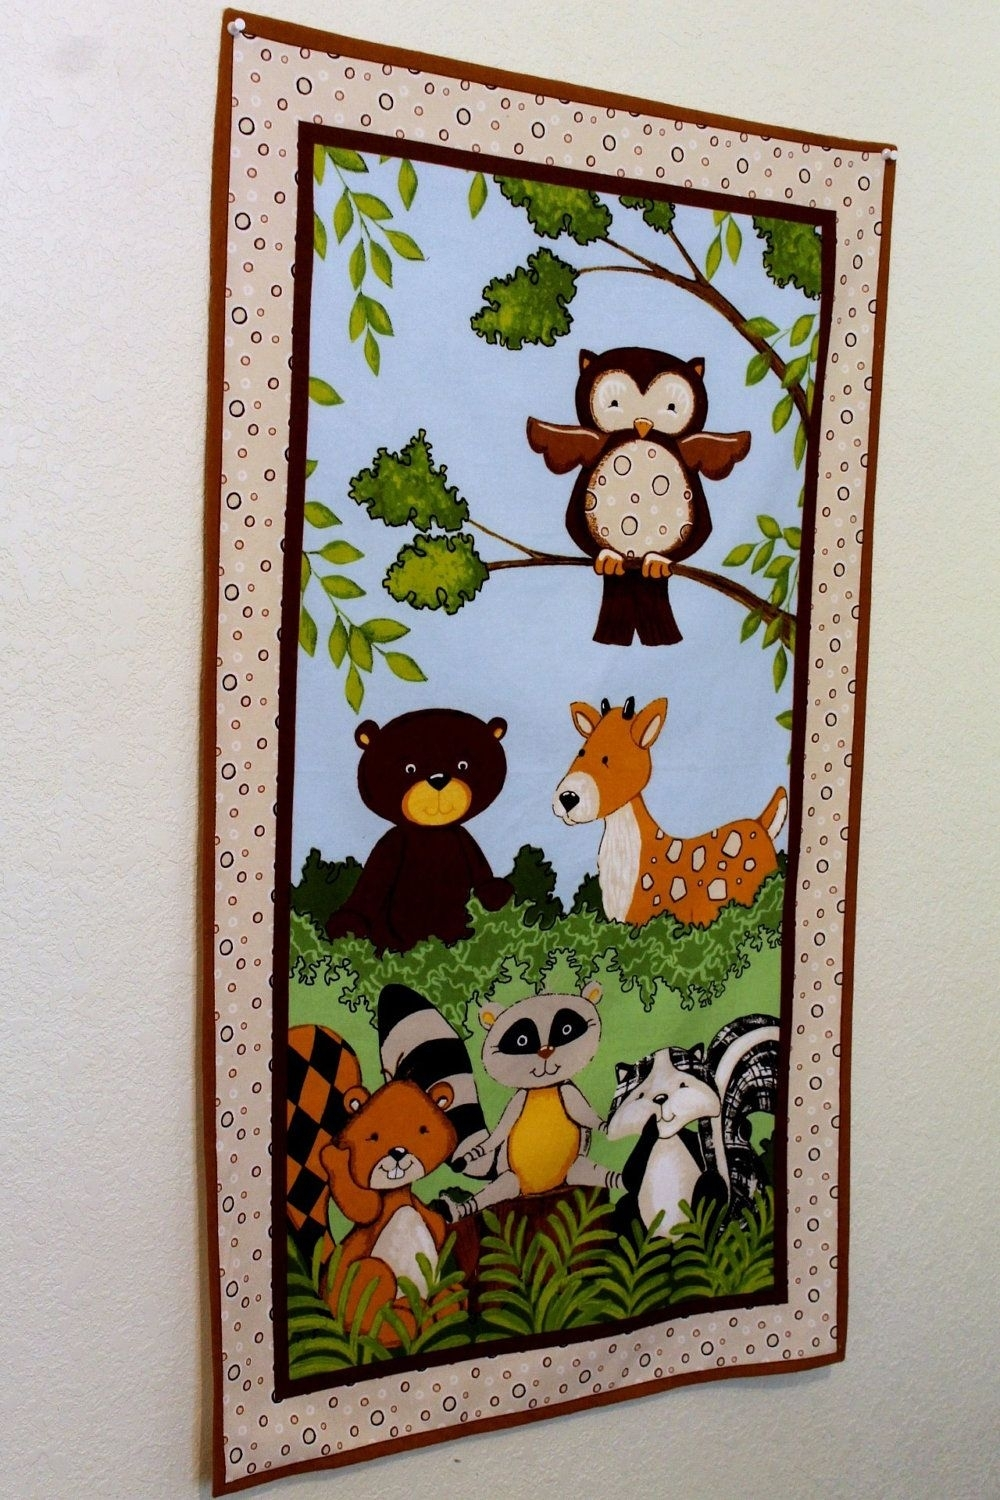 Wall Decor Woodland Animal Forest Creatures Flannel Fabric Panel Regarding Current Baby Nursery Fabric Wall Art (View 14 of 15)